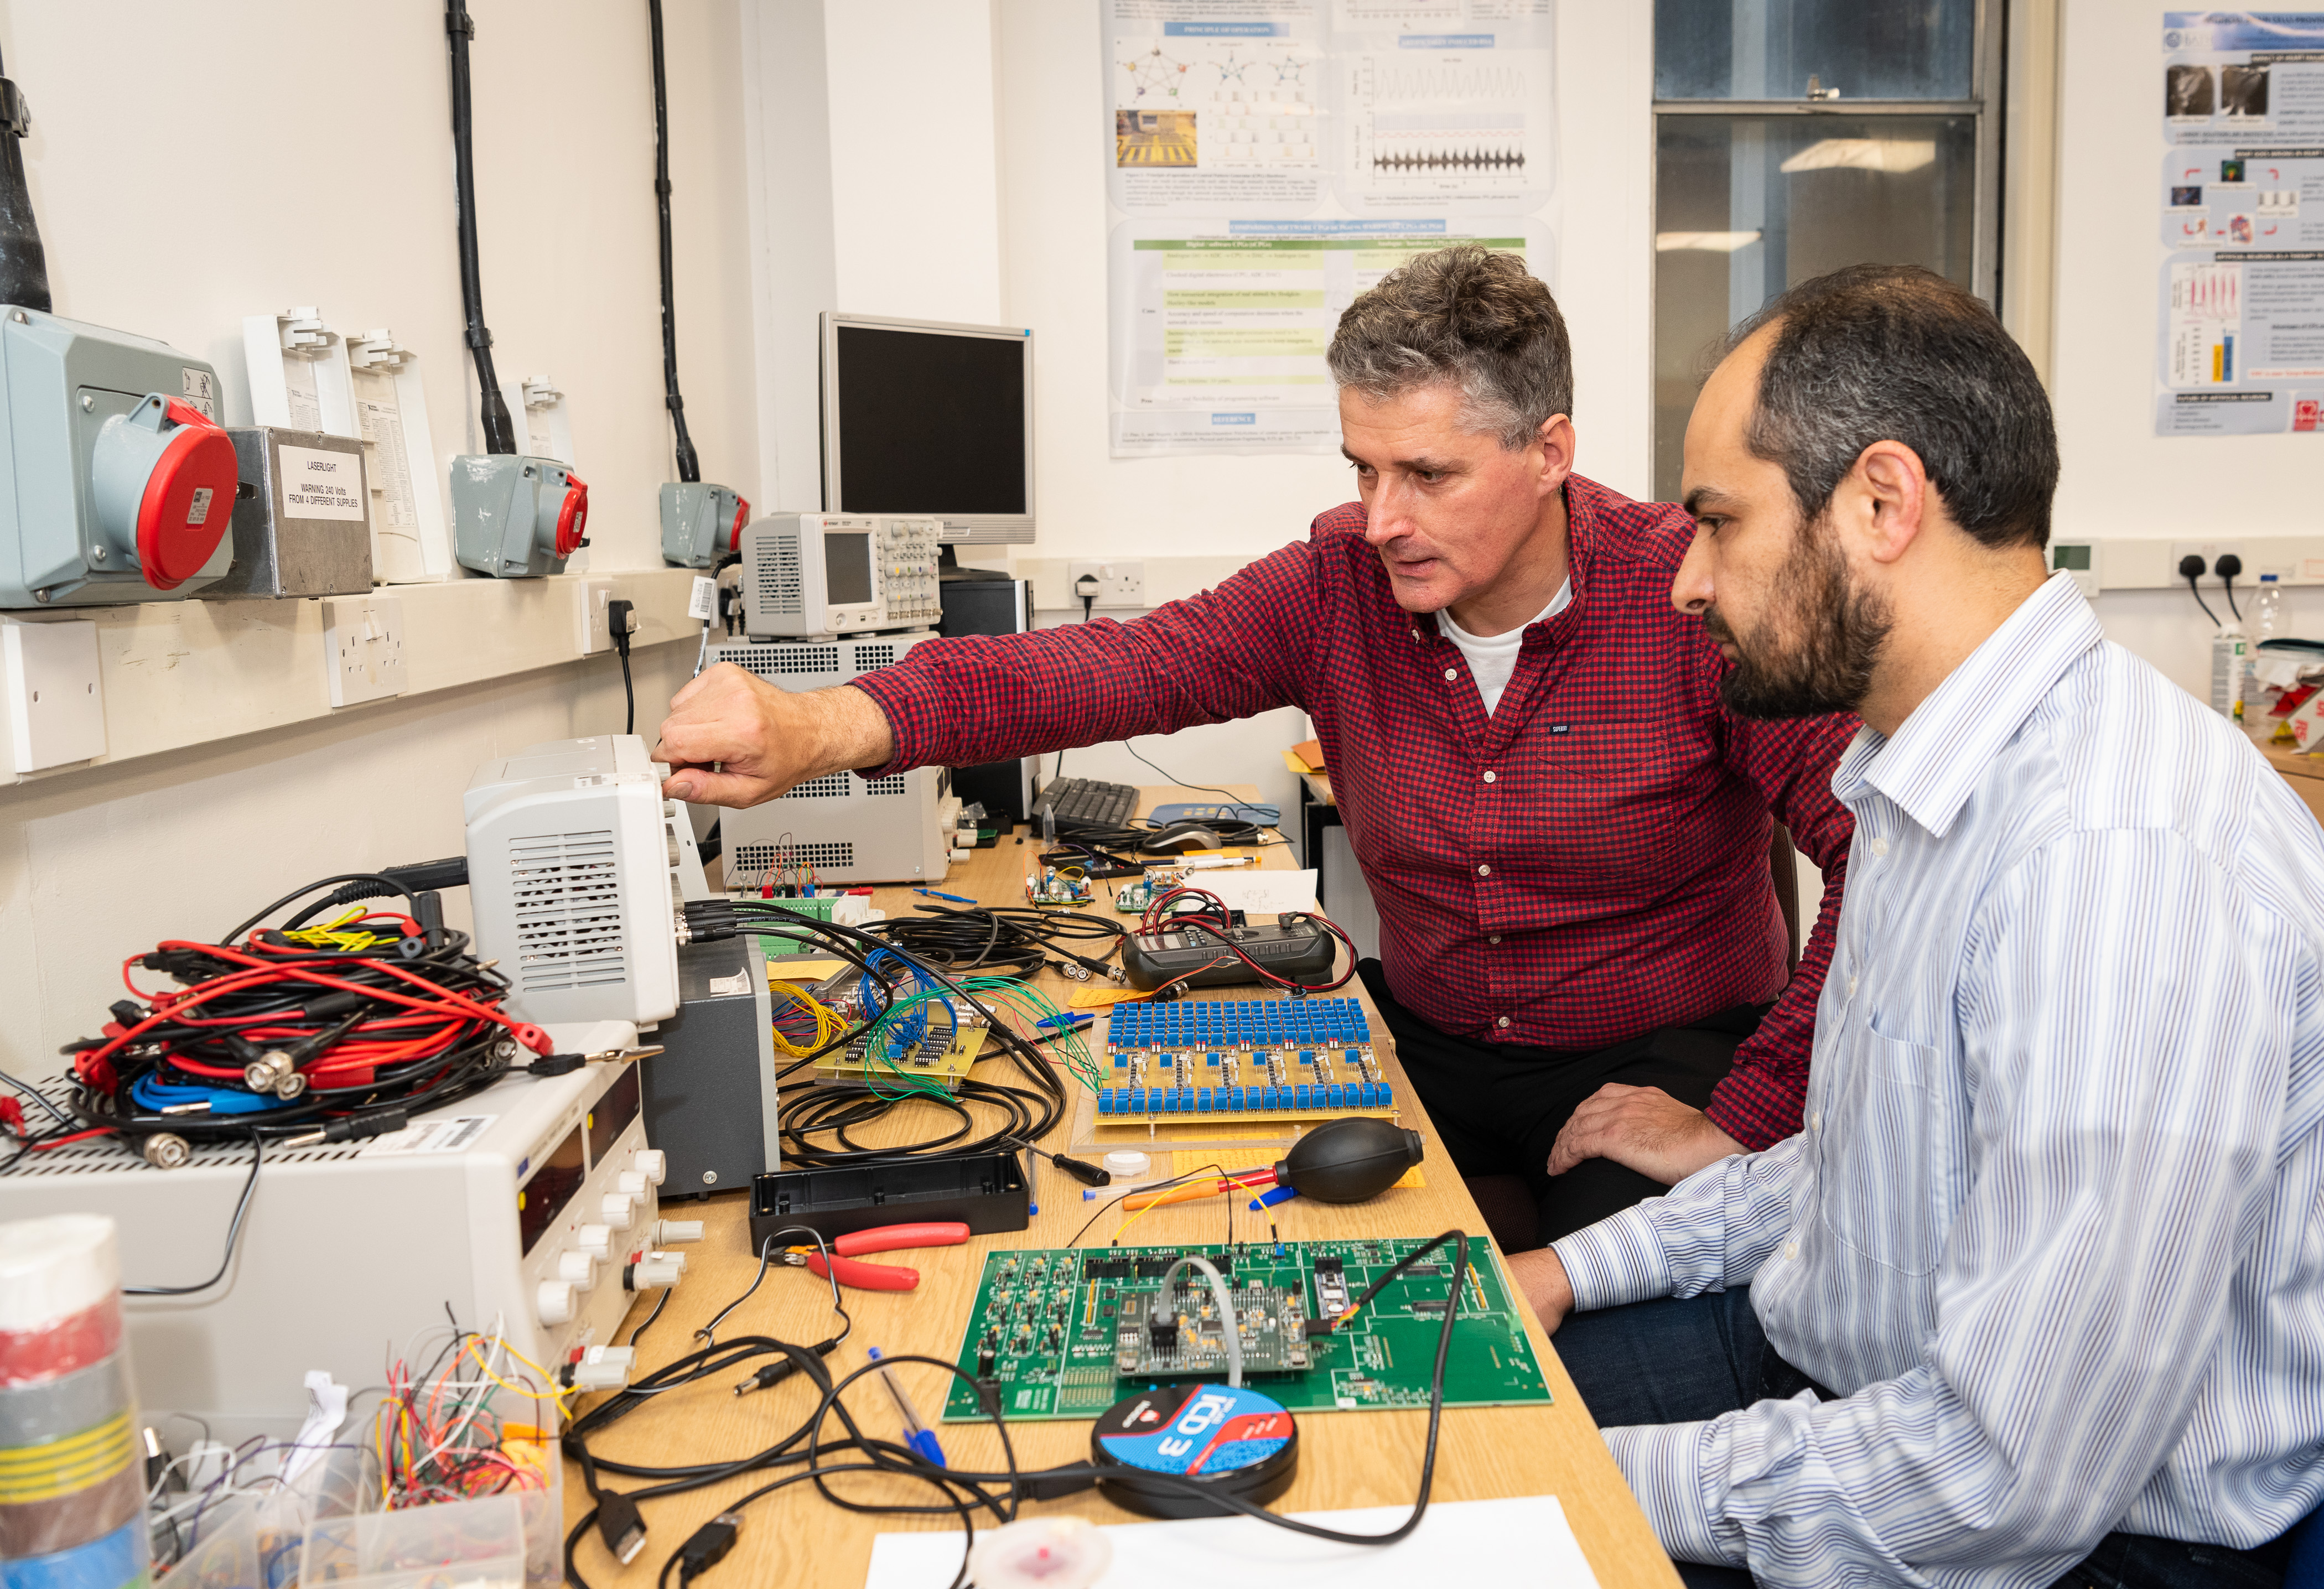 Professor Alain Nogaret and research associate Kamal Abu Hassan of the University of Bath